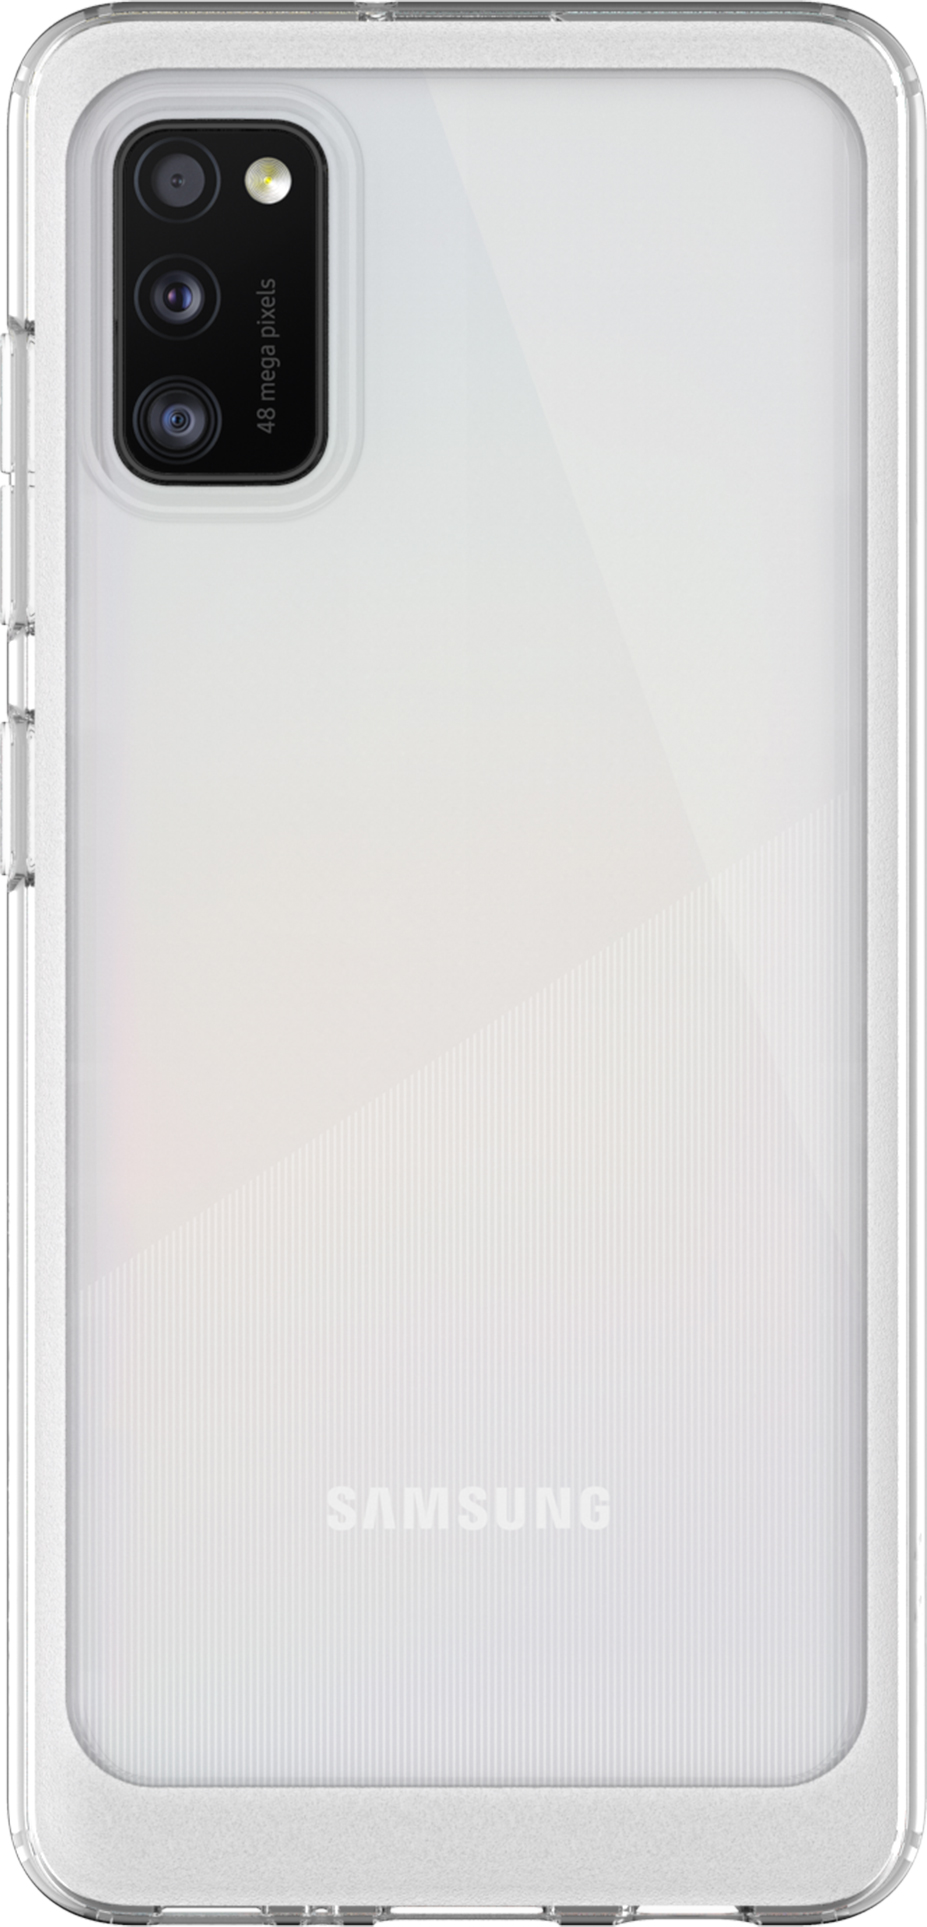 Чехол Samsung Galaxy A41 araree A cover прозрачный (GP-FPA415KDATR)